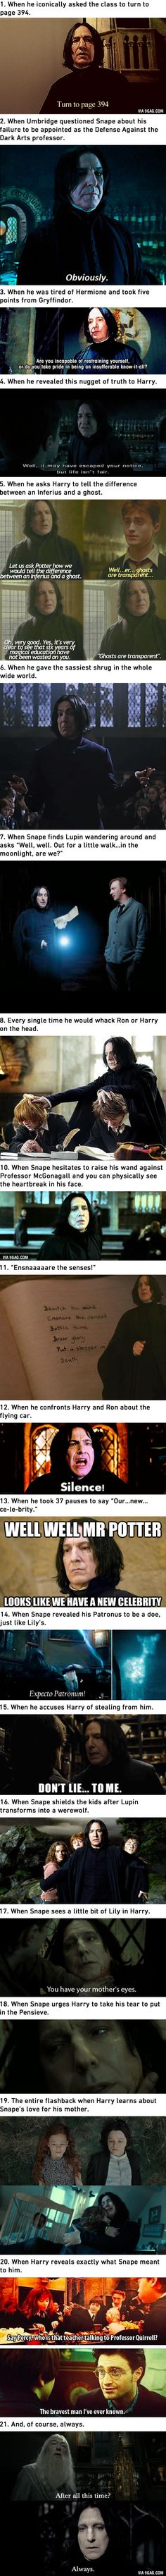 "21 Professor Snape Moments In ""Harry Potter"" That Make Us Love Him Gotta love Severus"